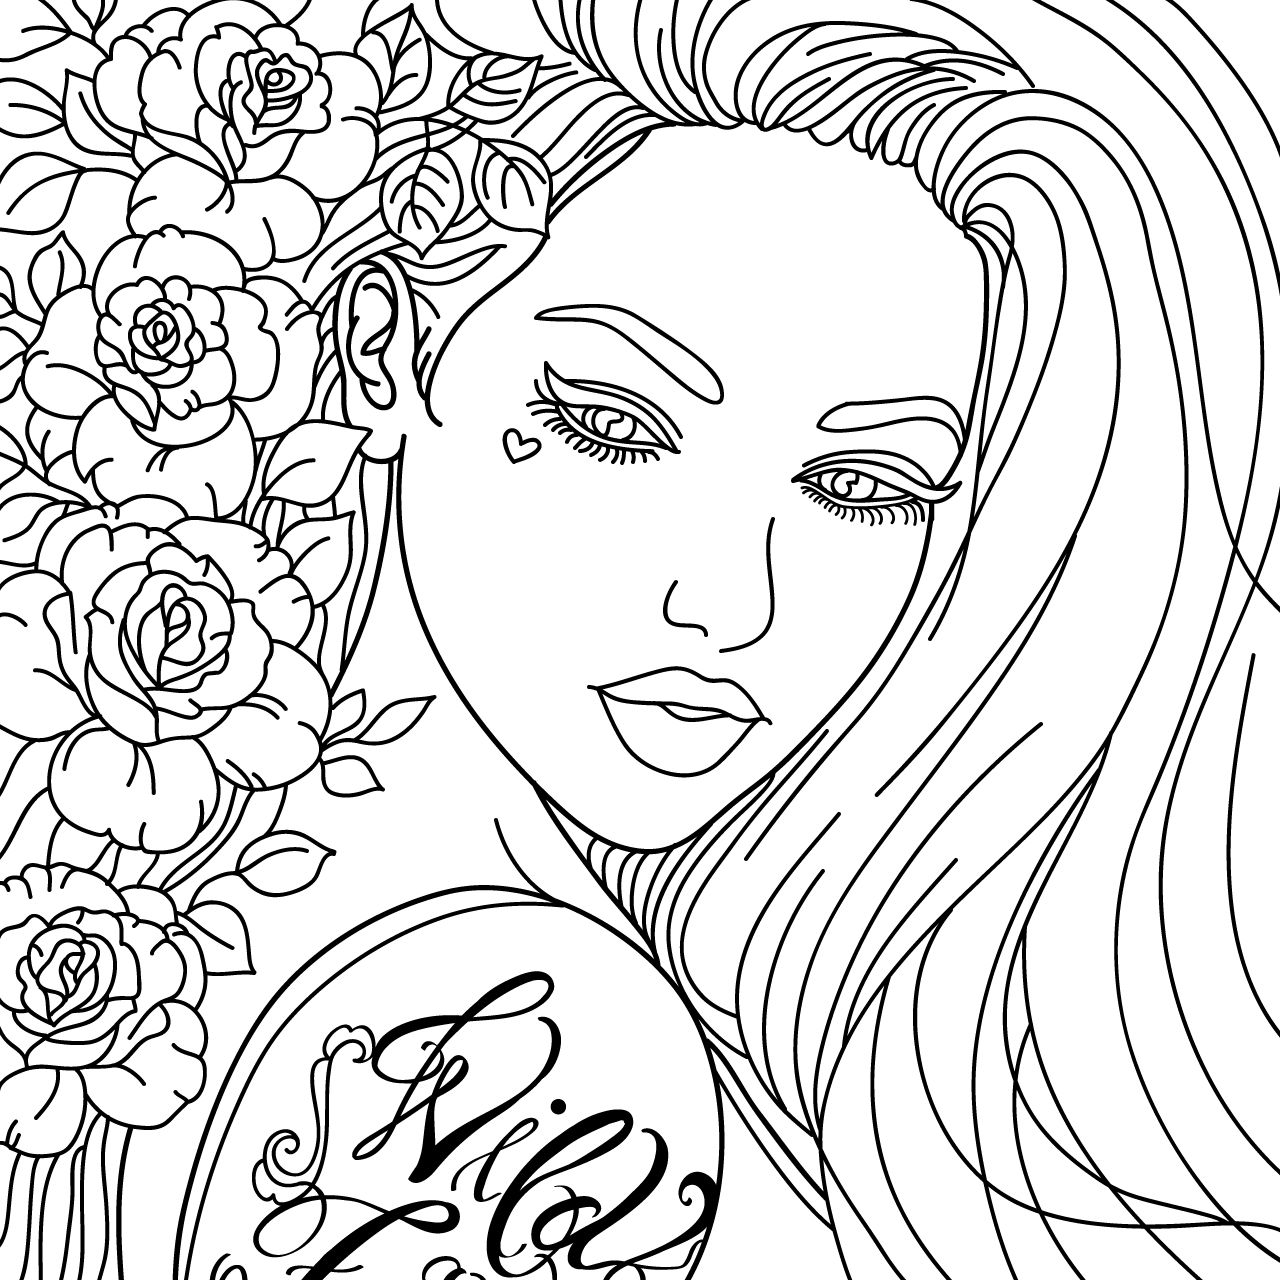 chicano art coloring pages pin by sophie mcentee on ideas for more ink chicano chicano coloring art pages